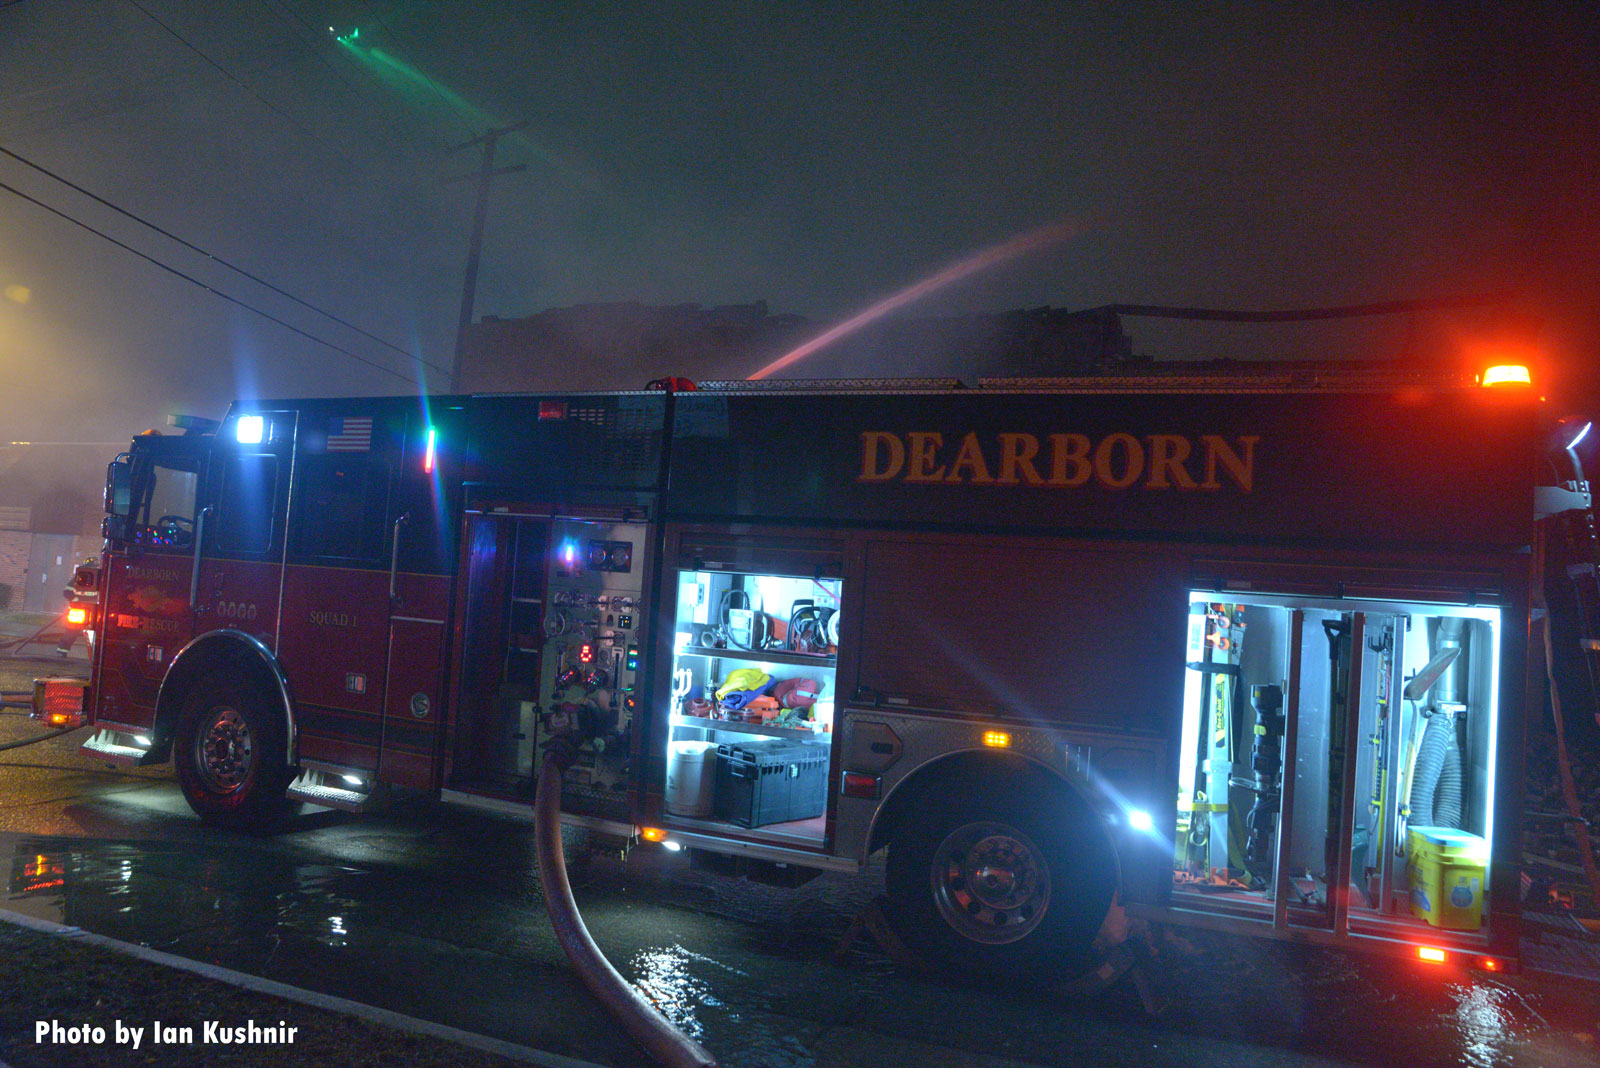 Dearborn rig at the fire scene